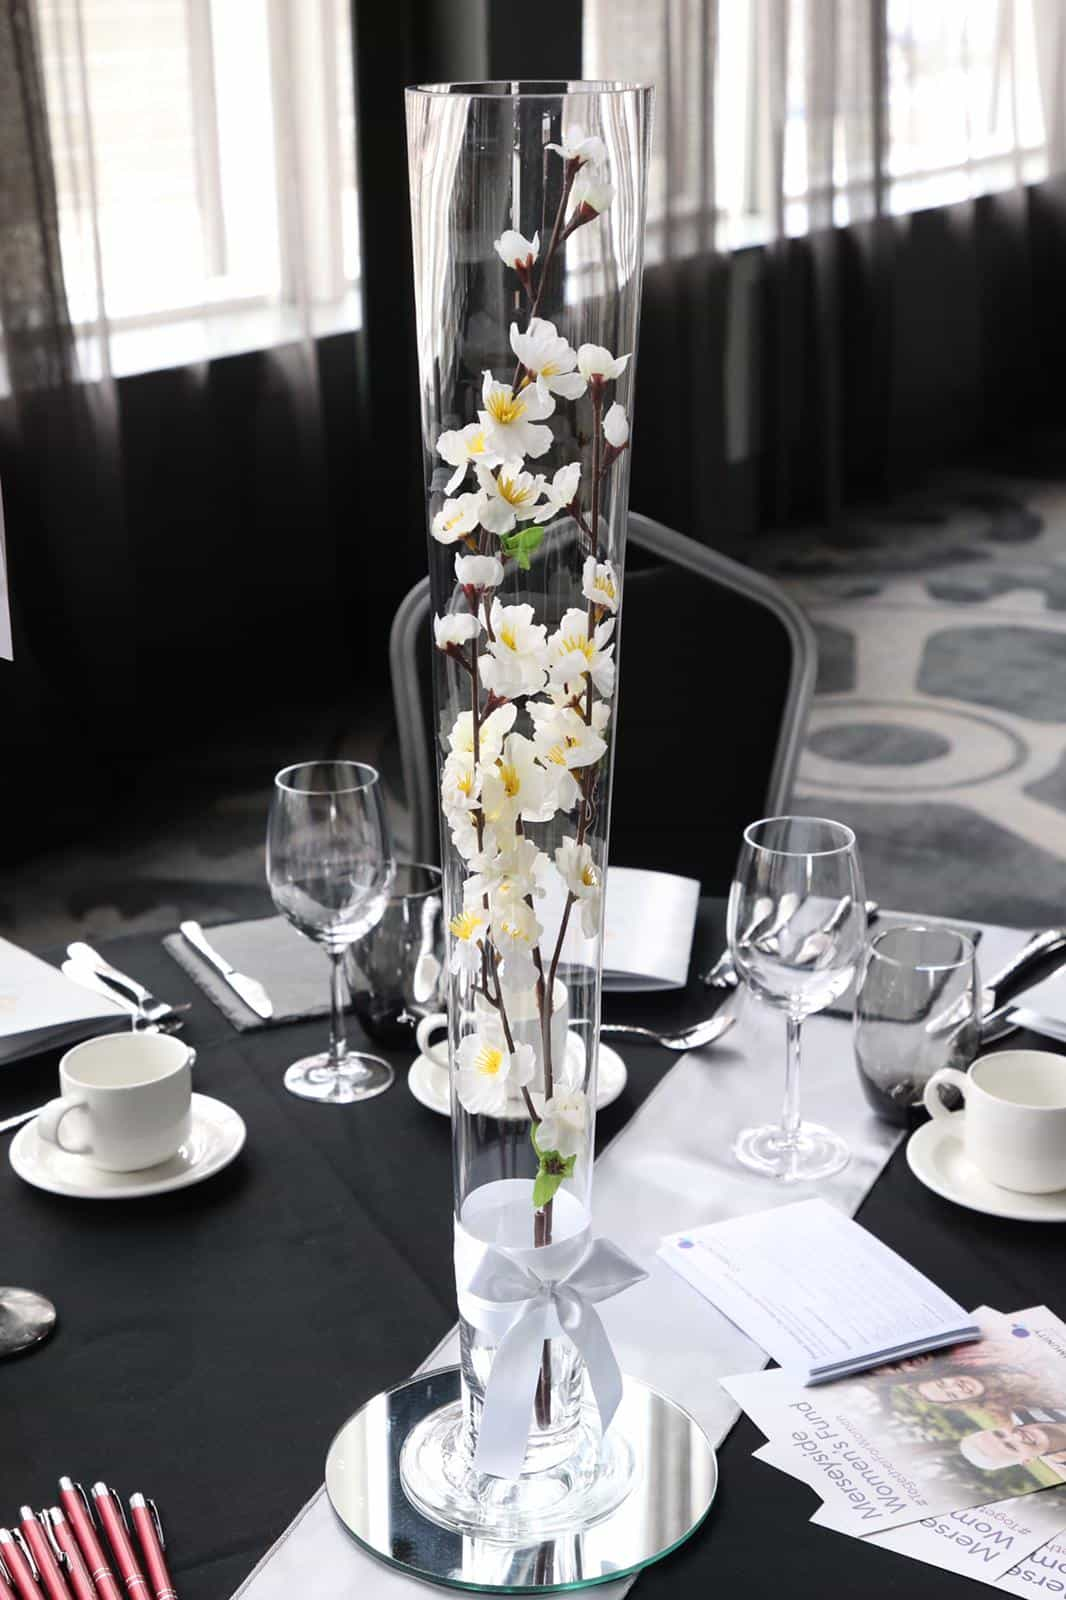 Wedding breakfast table centrepiece tall 70cm vase with white lily flower inside